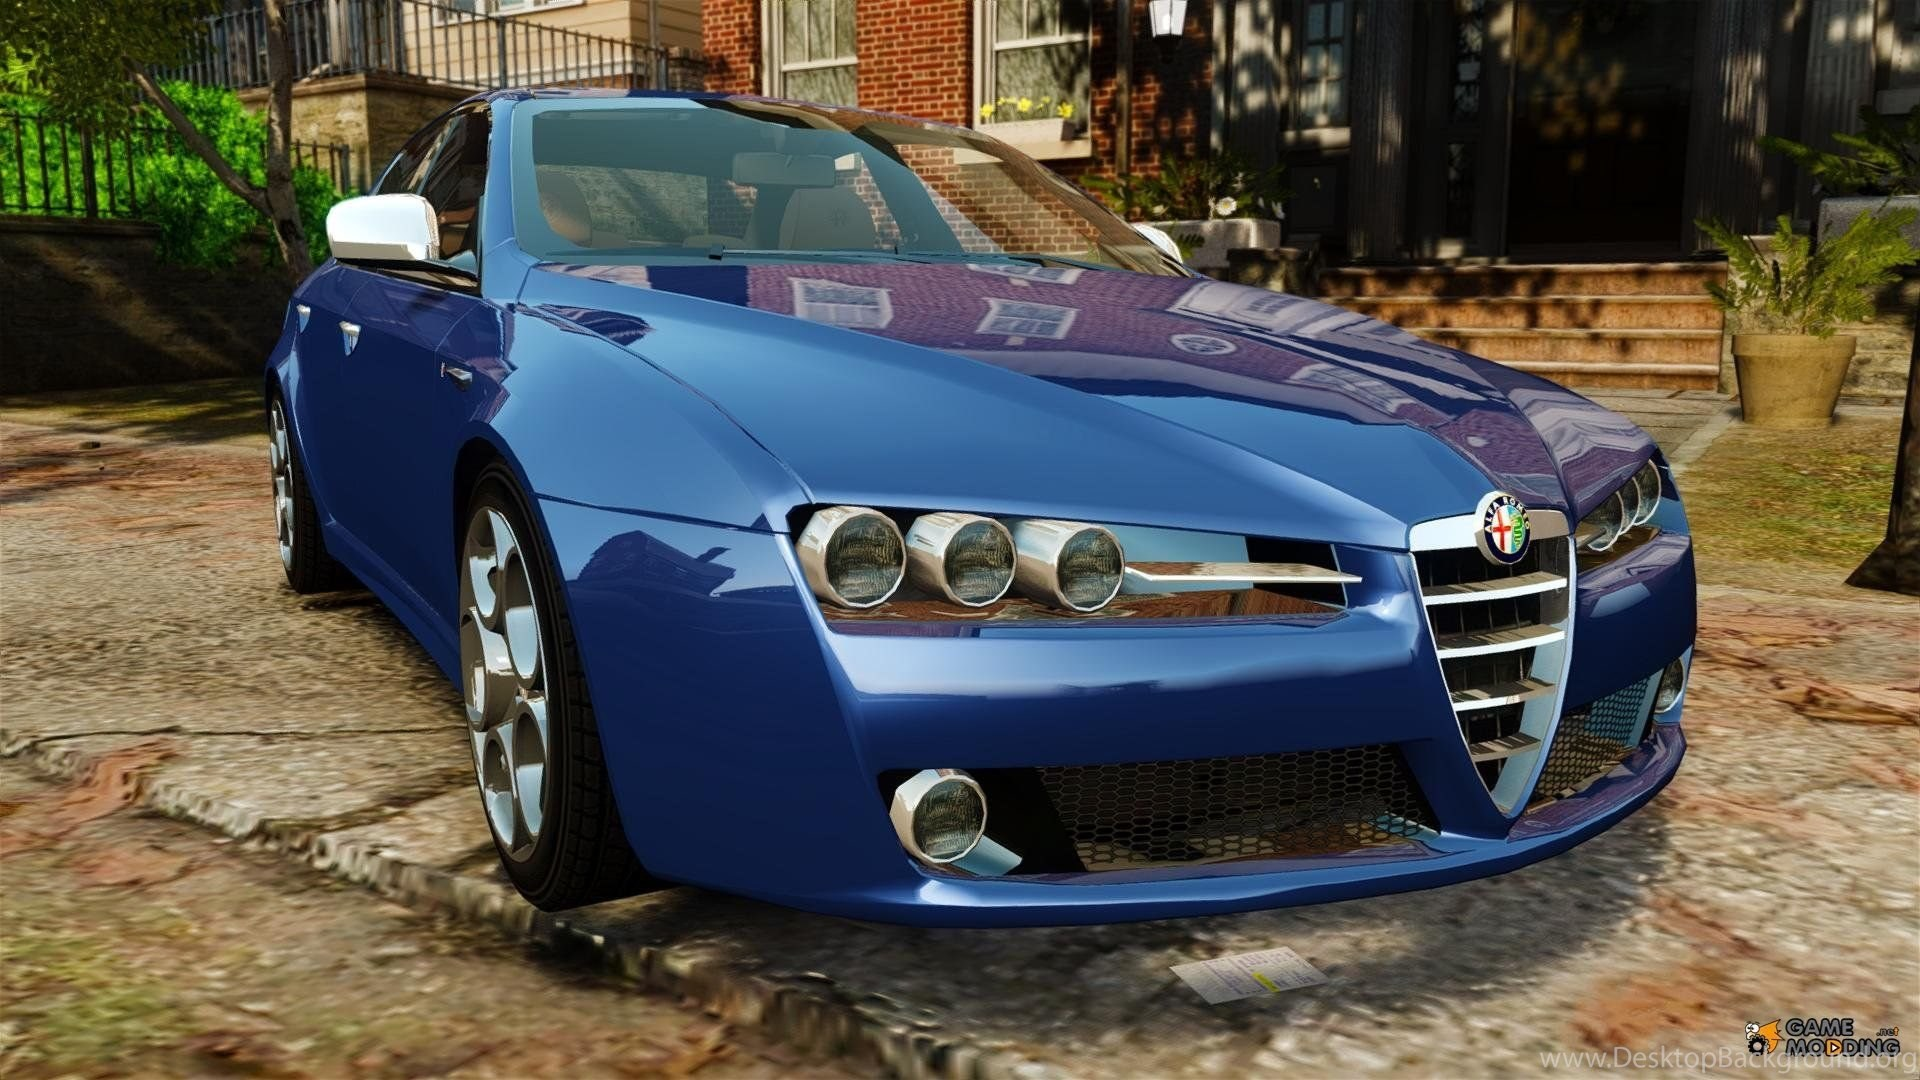 Blue Alfa Romeo 159 Wallpapers And Images Wallpapers Pictures